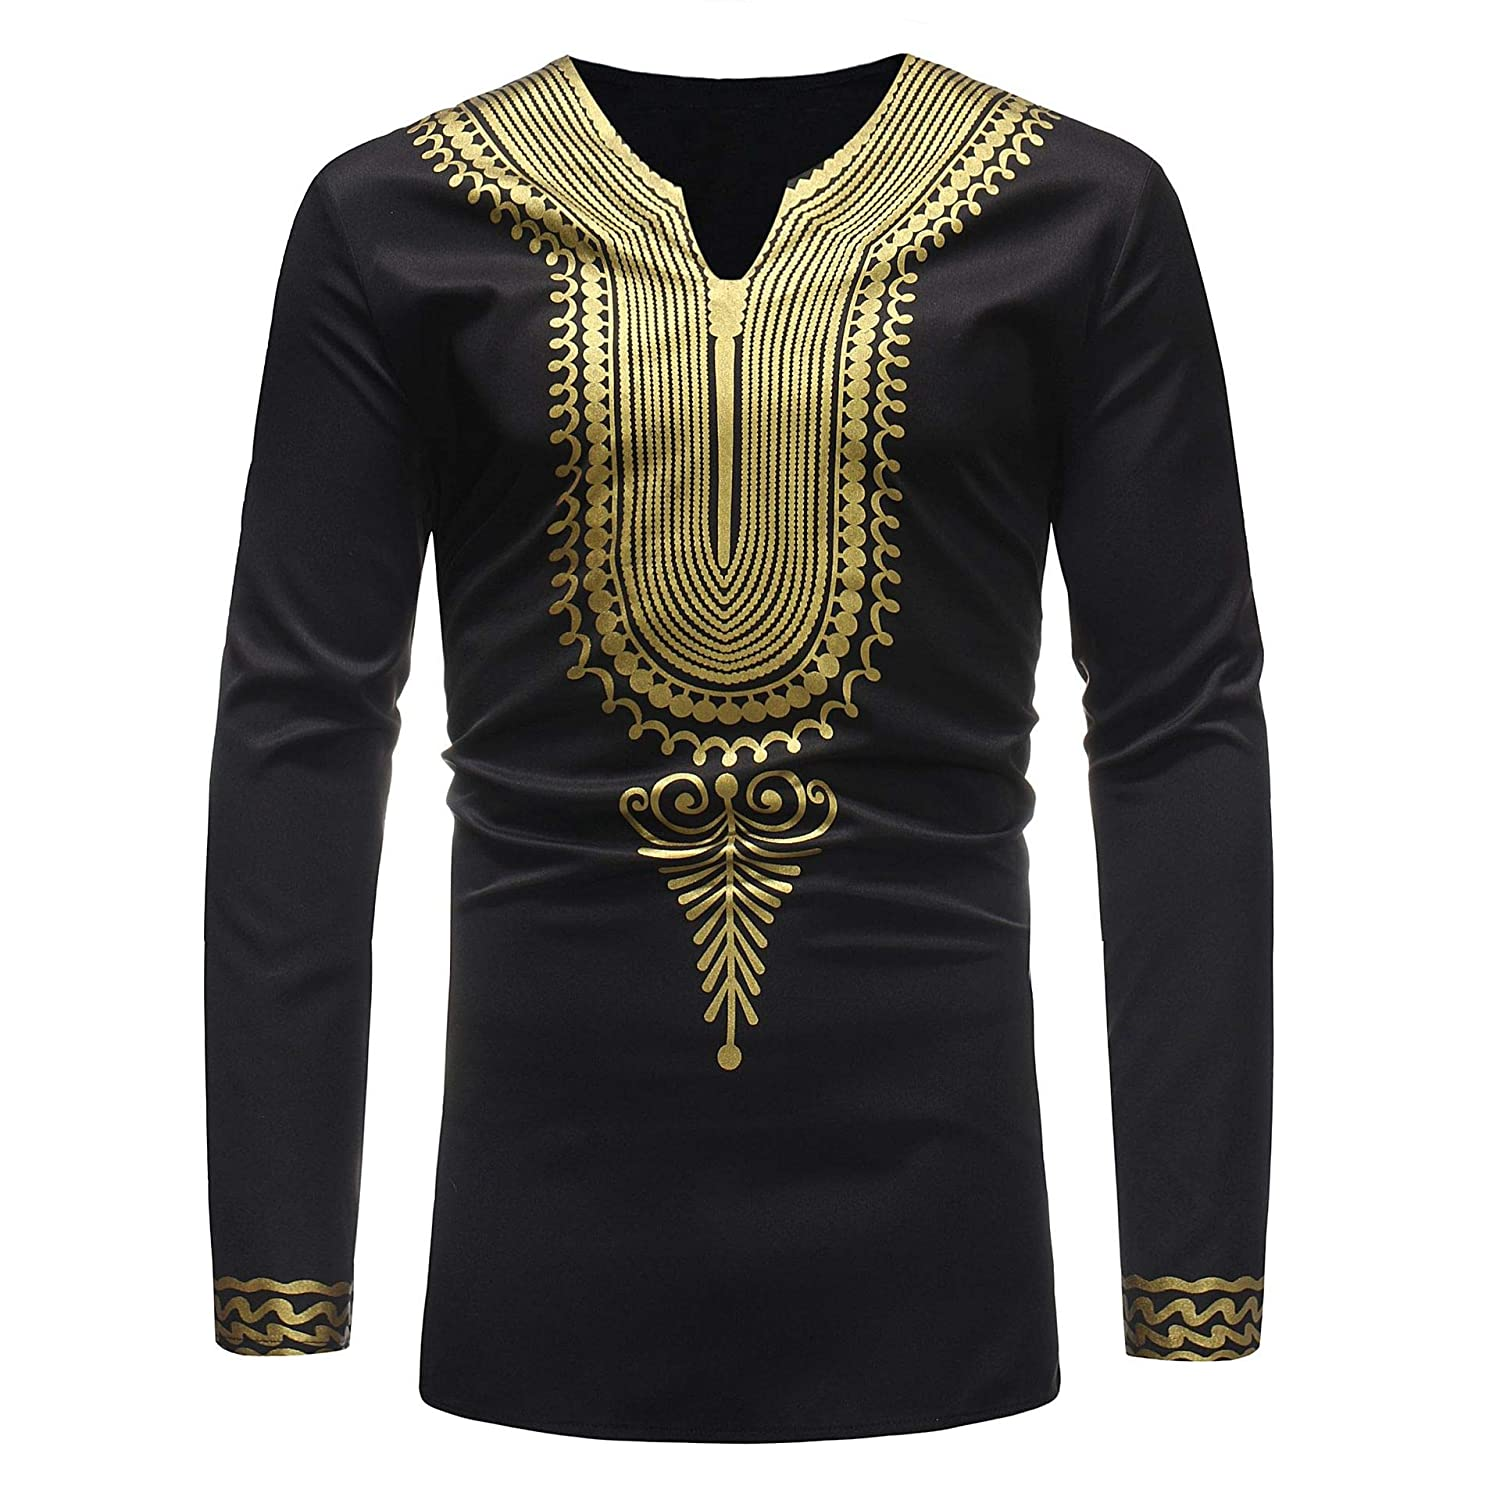 ff28433881 Top 10 wholesale Plus Size Dressy Shirts - Chinabrands.com